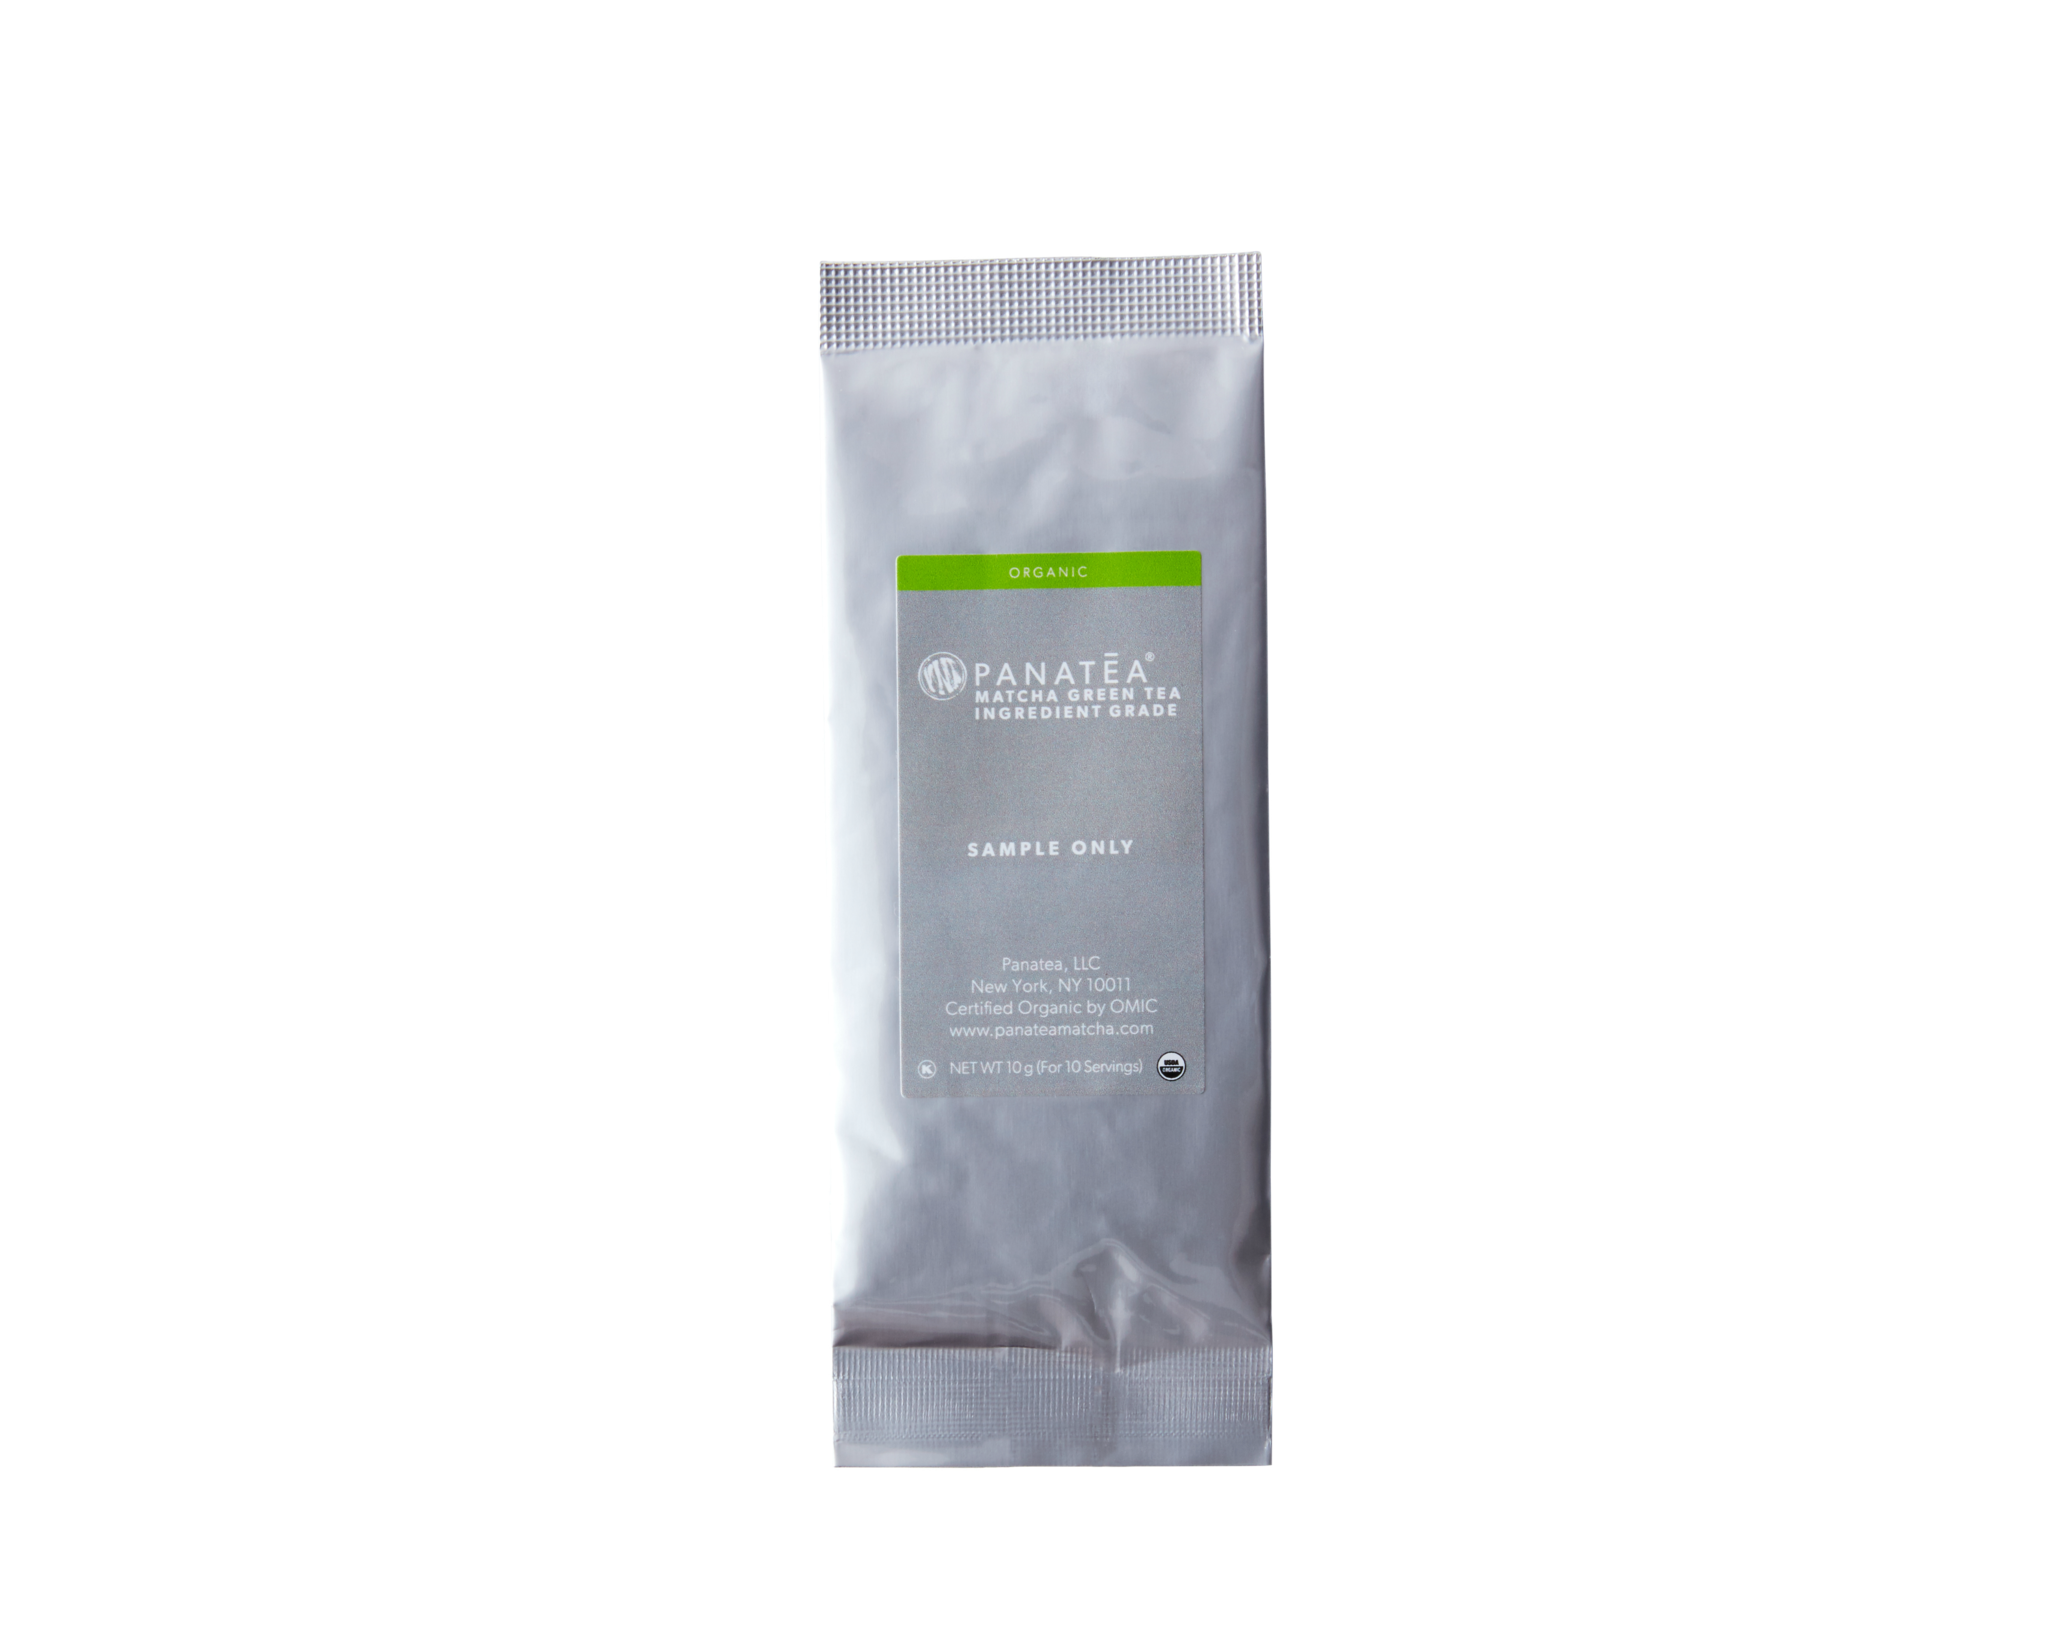 Organic Ingredient Grade Matcha Sample